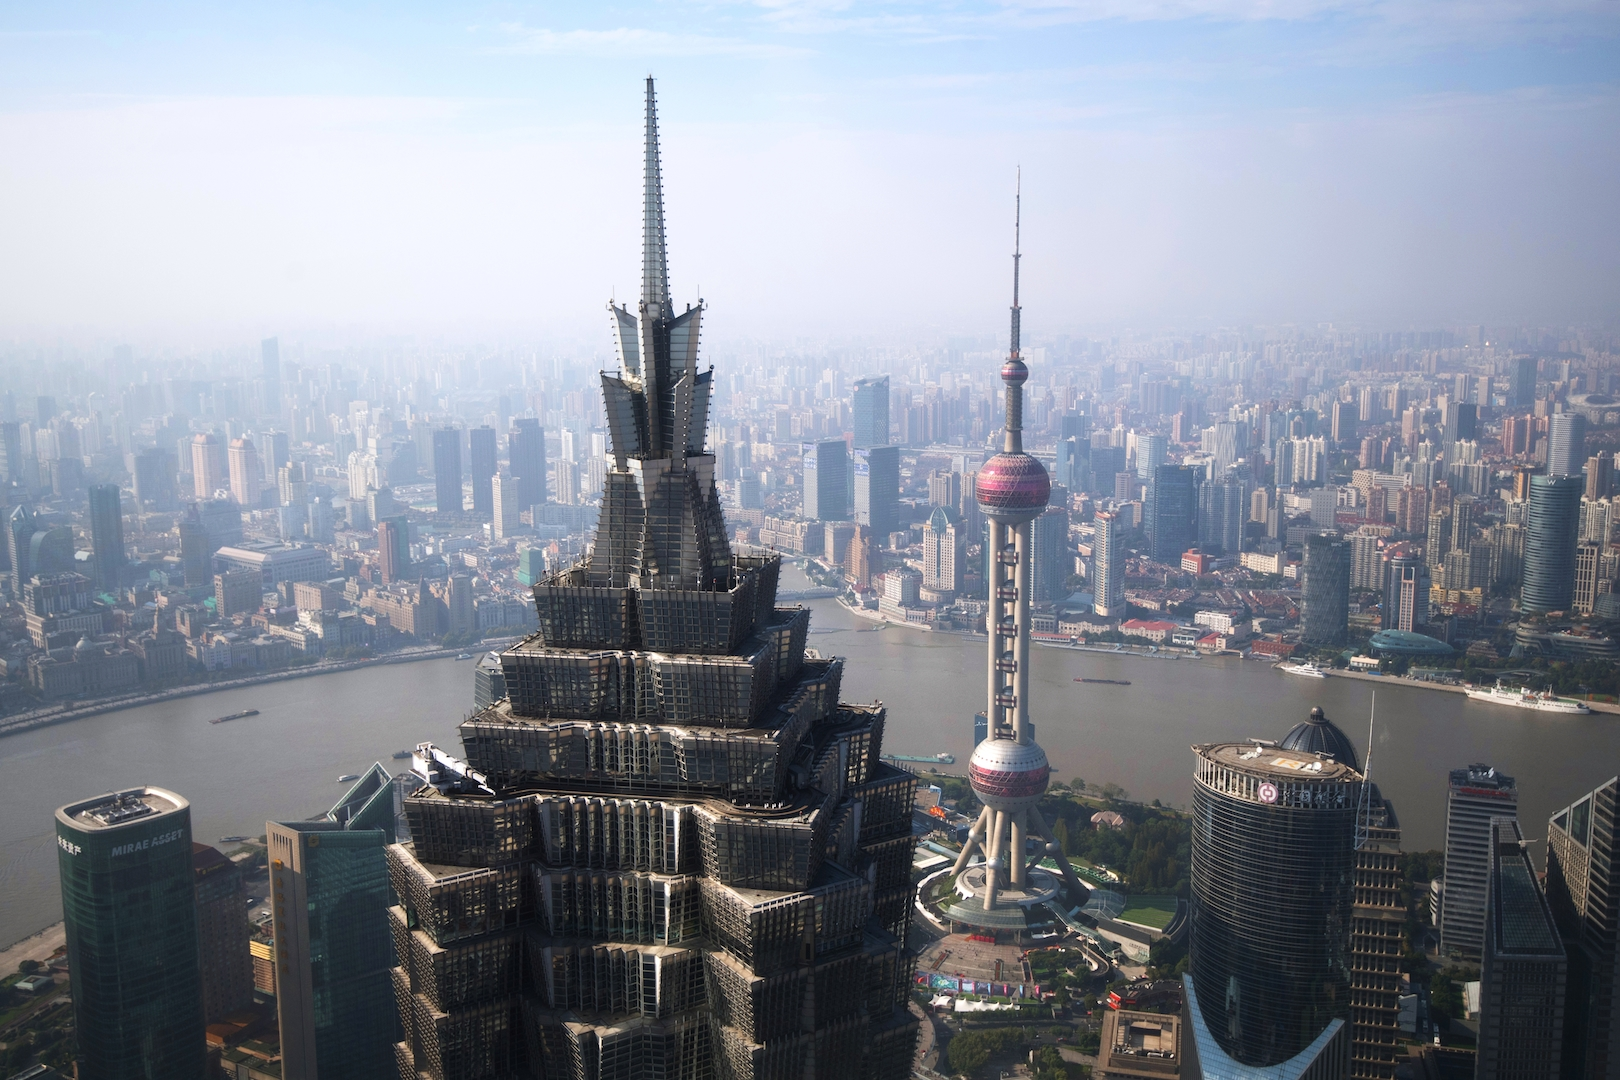 La Jin Mao Tower et le quartier de la finance dans le district de Pudong à Shanghai, le 14 novembre 2017. (Crédits : Iliya Pitalev/Sputnik/via AFP)